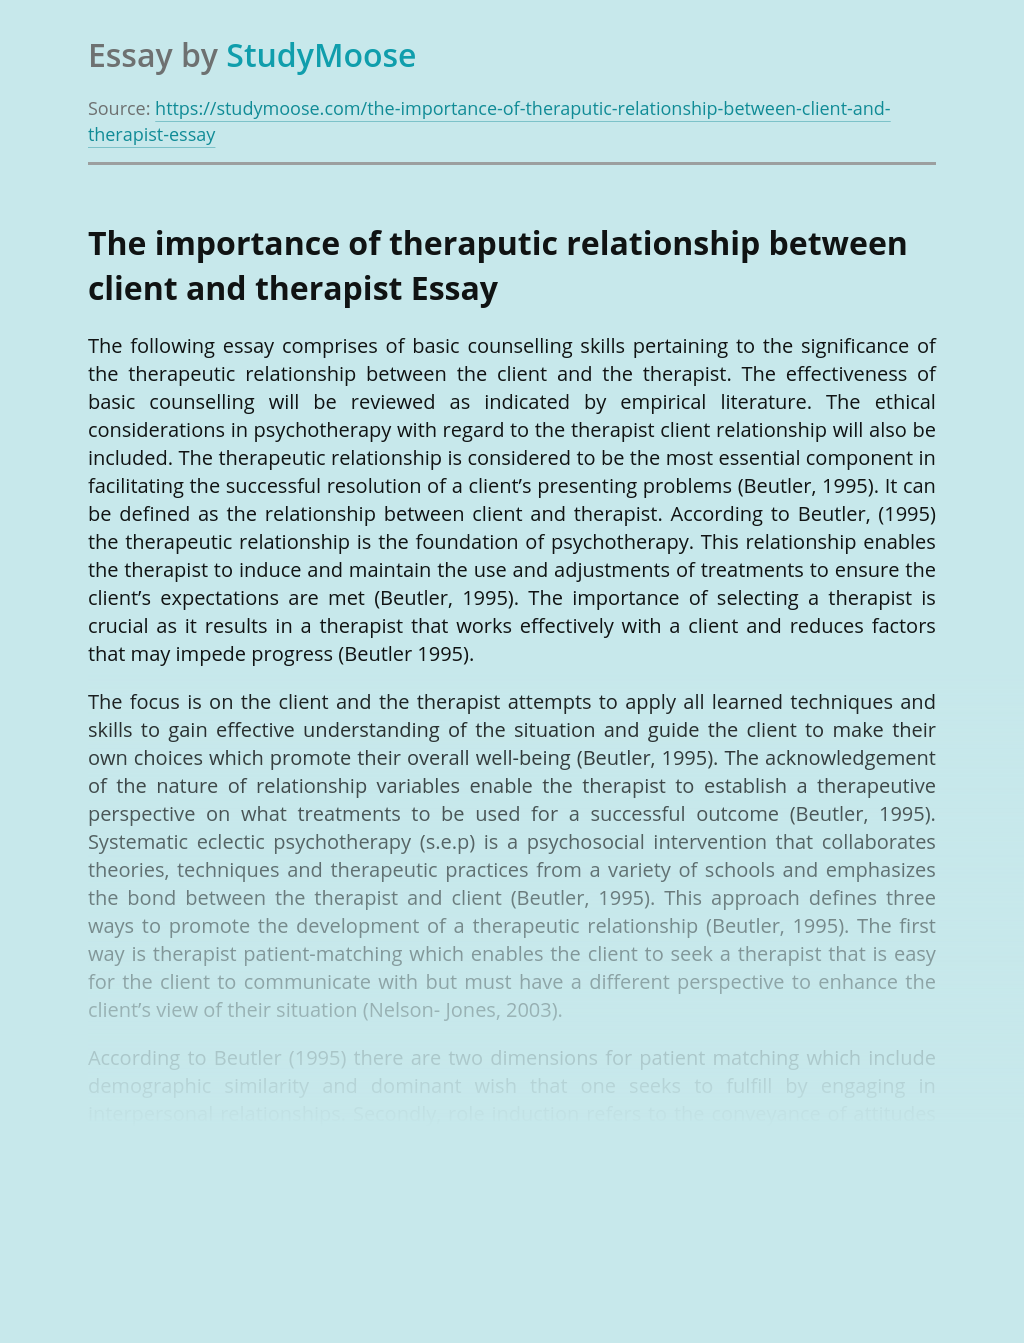 The importance of theraputic relationship between client and therapist